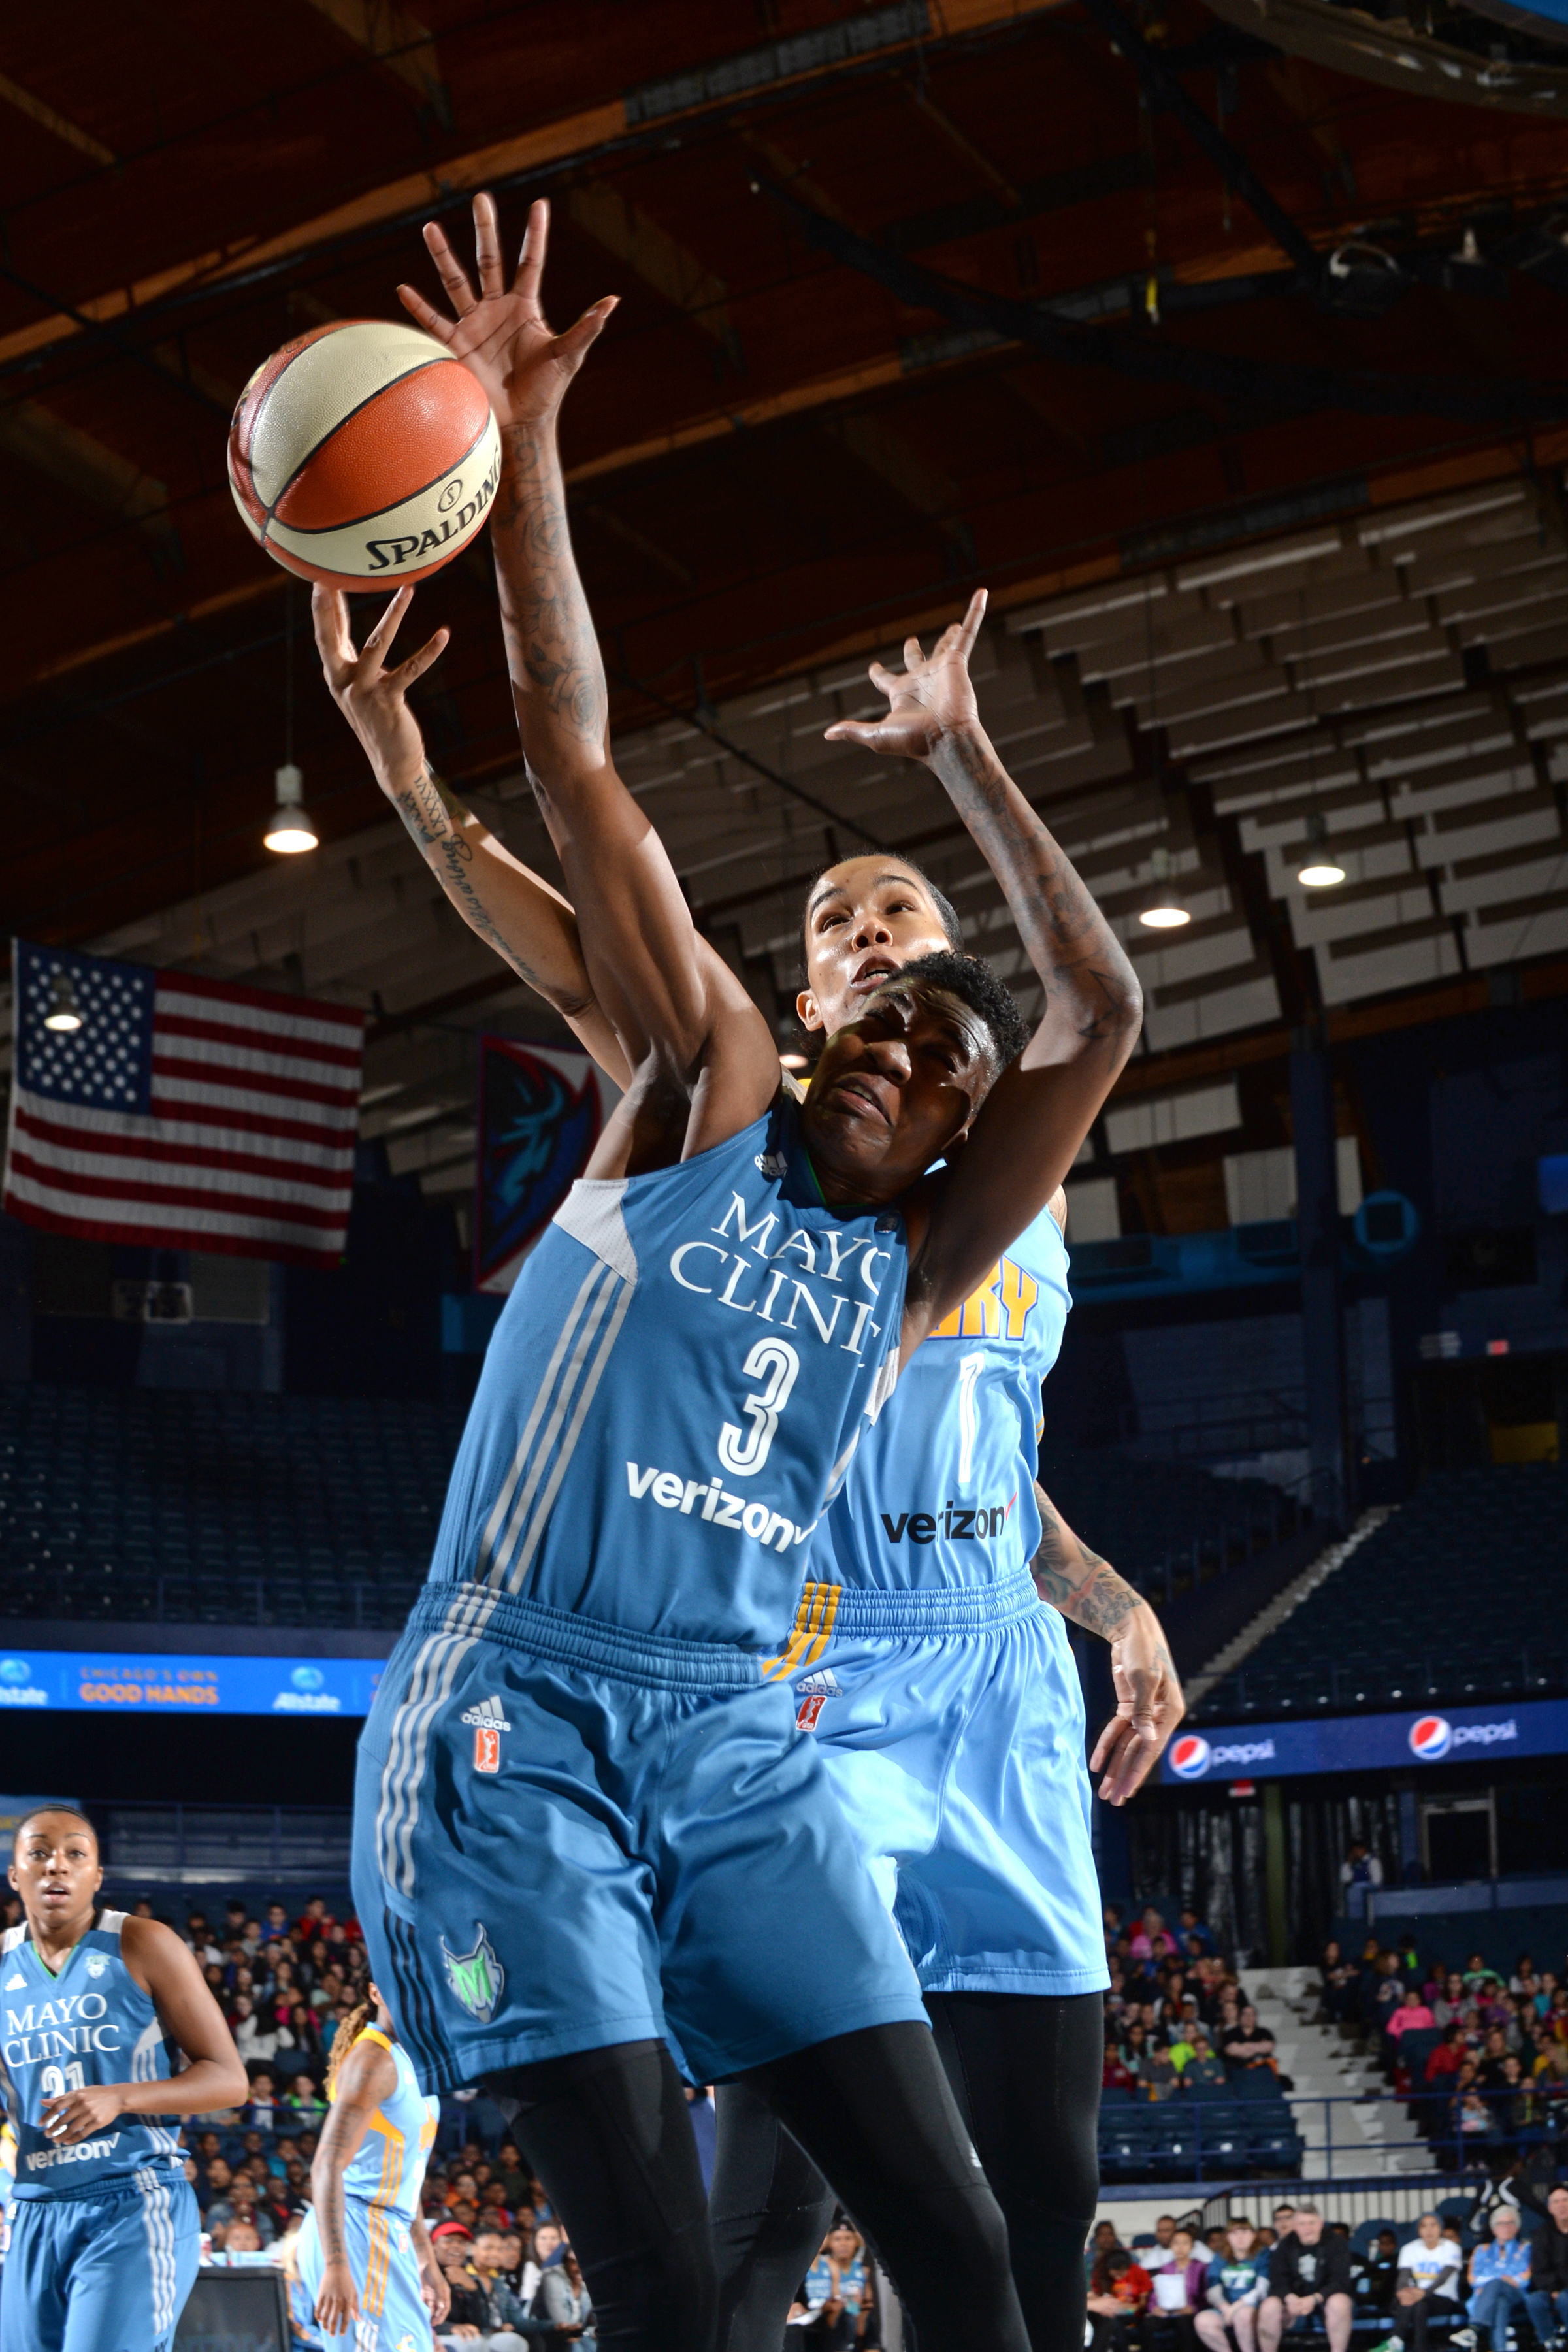 ROSEMONT, IL- MAY 18: Tamera Young #1 of the Chicago Sky drives to the basket against Natasha Howard #3 of the Minnesota Lynx on May 18, 2016 at the Allstate Arena in Rosemont, Illinois. NOTE TO USER: User expressly acknowledges and agrees that, by downloading and/or using this photograph, user is consenting to the terms and conditions of the Getty Images License Agreement. Mandatory Copyright Notice: Copyright 2016 NBAE (Photo by Randy Belice/NBAE via Getty Images)